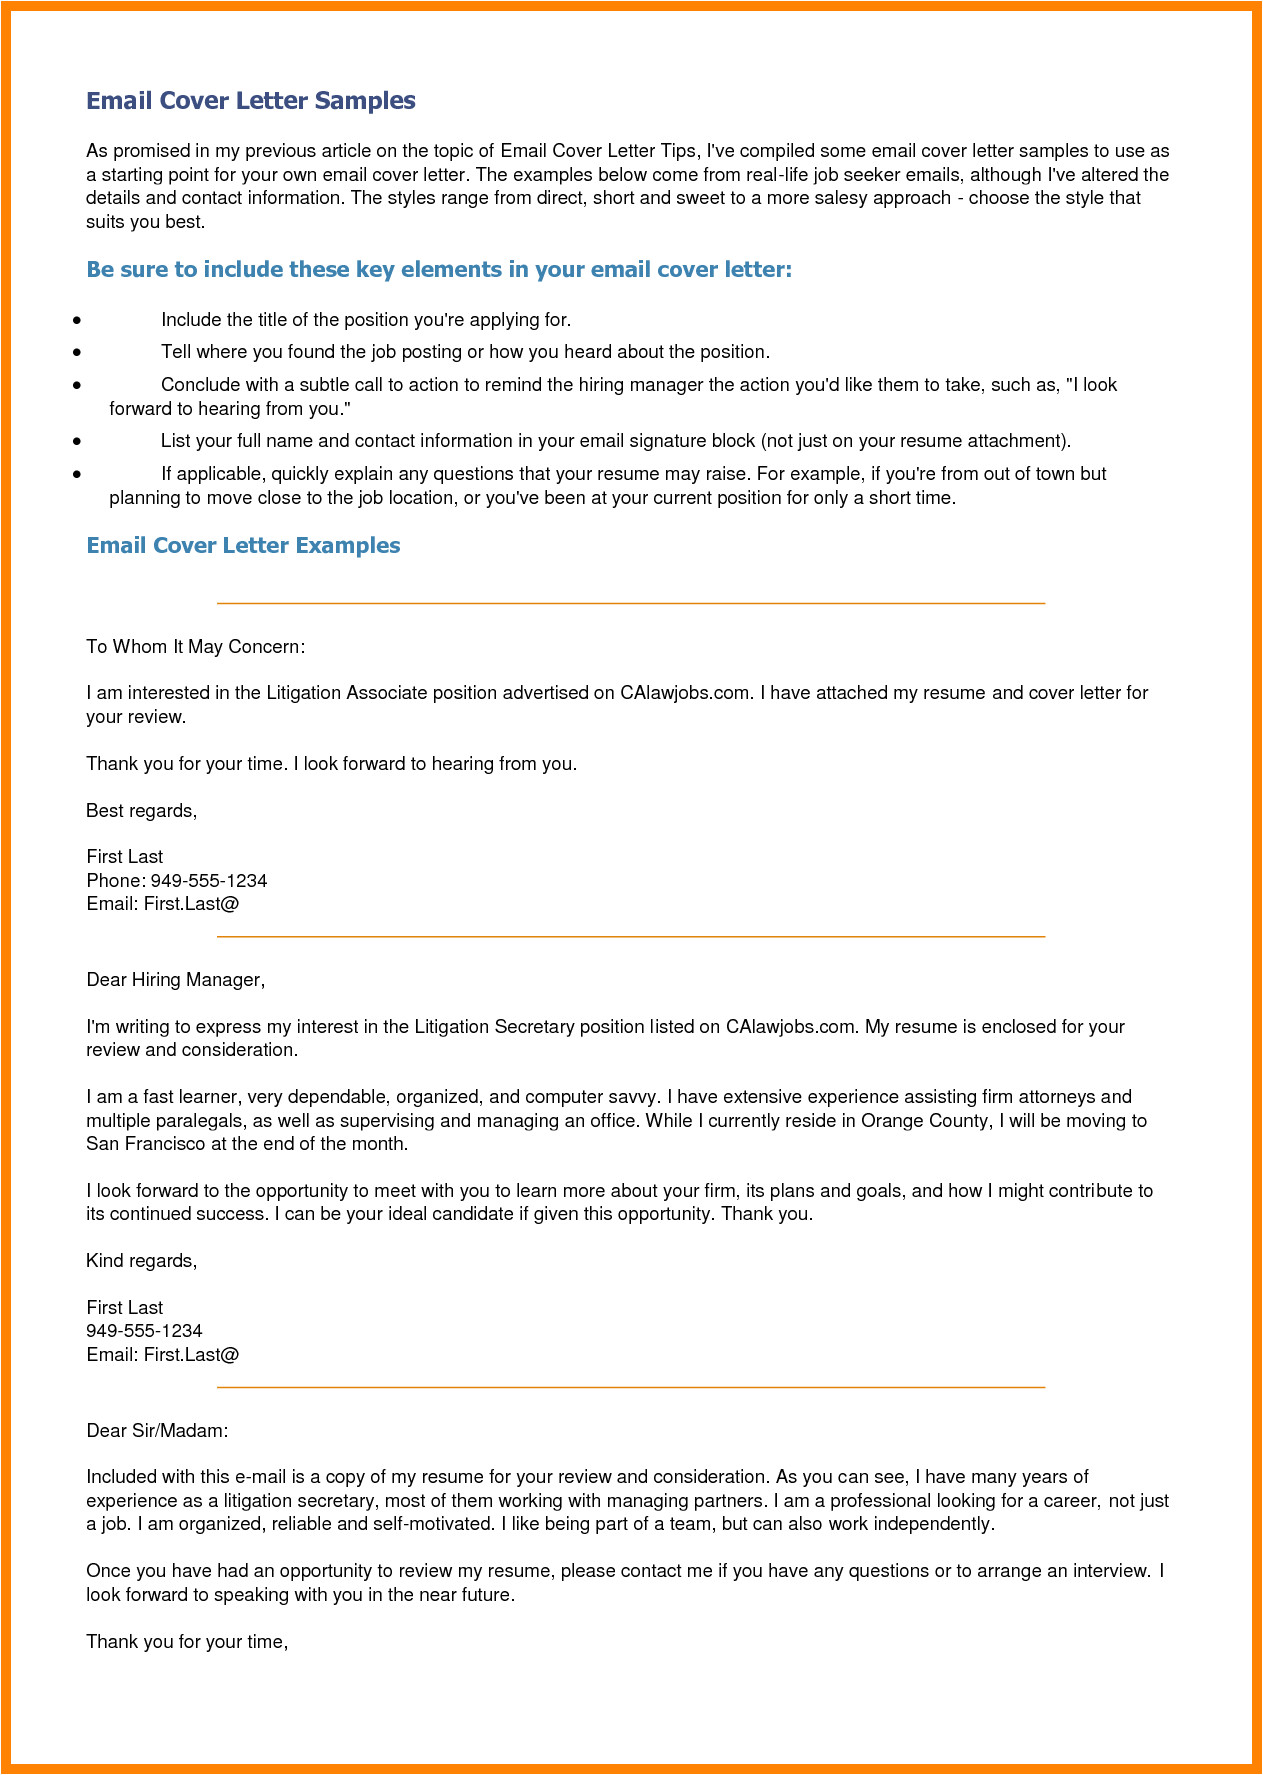 Canadian Style Resume and Cover Letter Canadian Style Resume Fresh Sample Resume Canadian Style 2